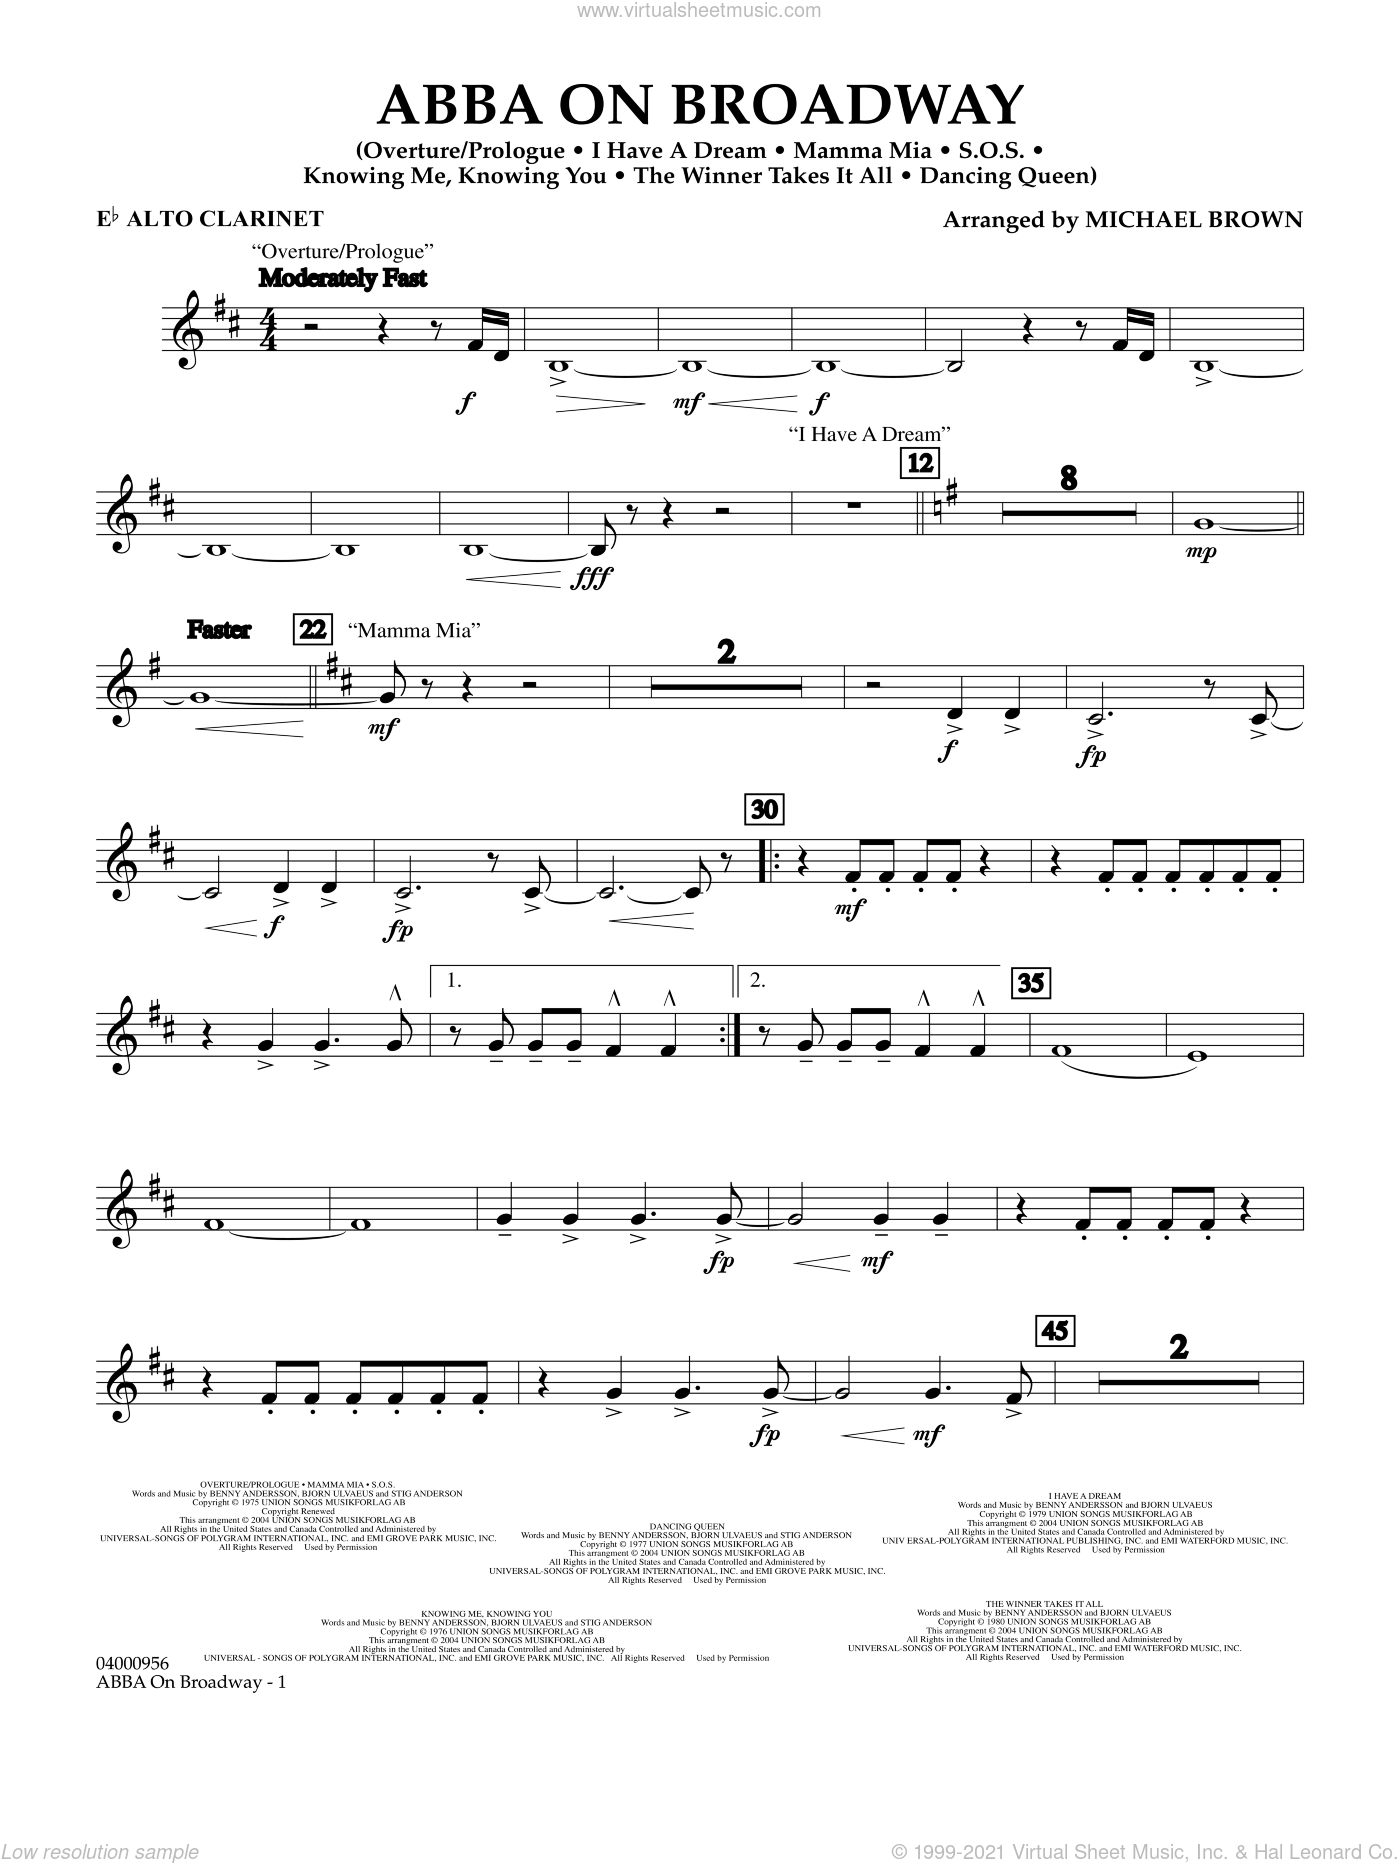 ABBA on Broadway (arr. Michael Brown) sheet music for concert band (Eb alto clarinet) by ABBA and Michael Brown, intermediate skill level